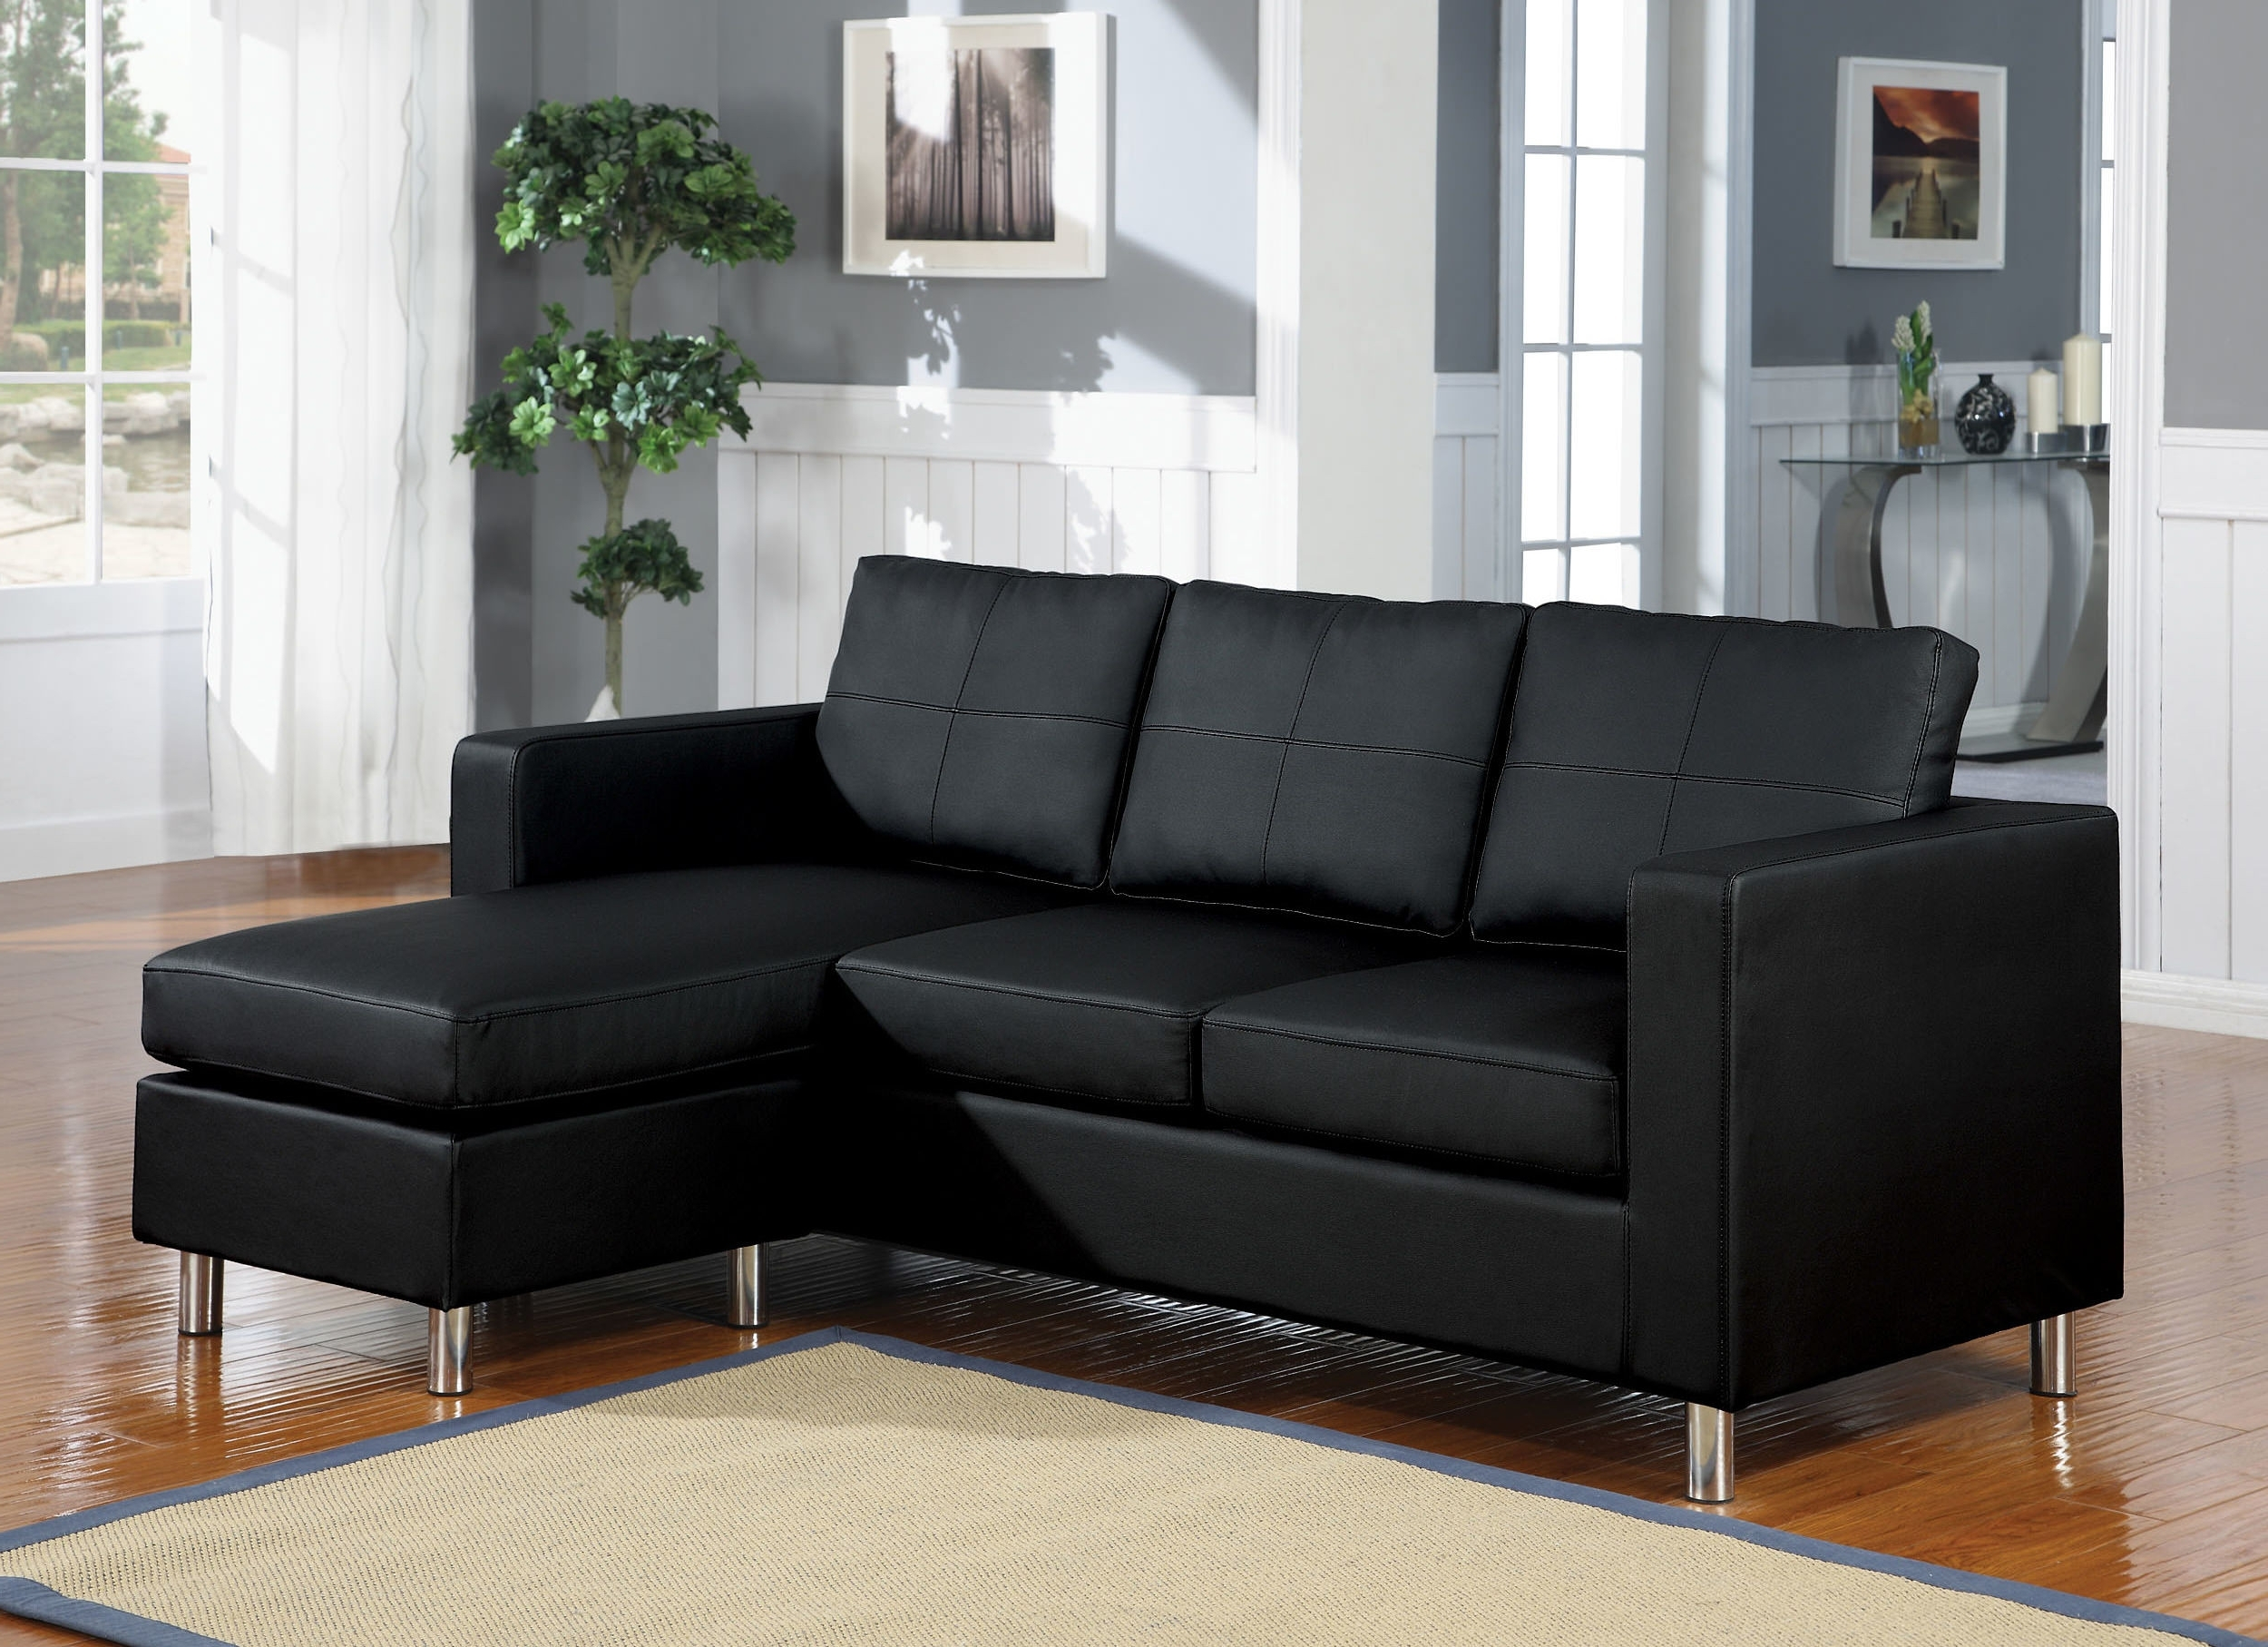 Sectional Sofas At Walmart For Best And Newest Furniture : Magnificent Walmart Sectionals Best Of Furniture (View 11 of 20)